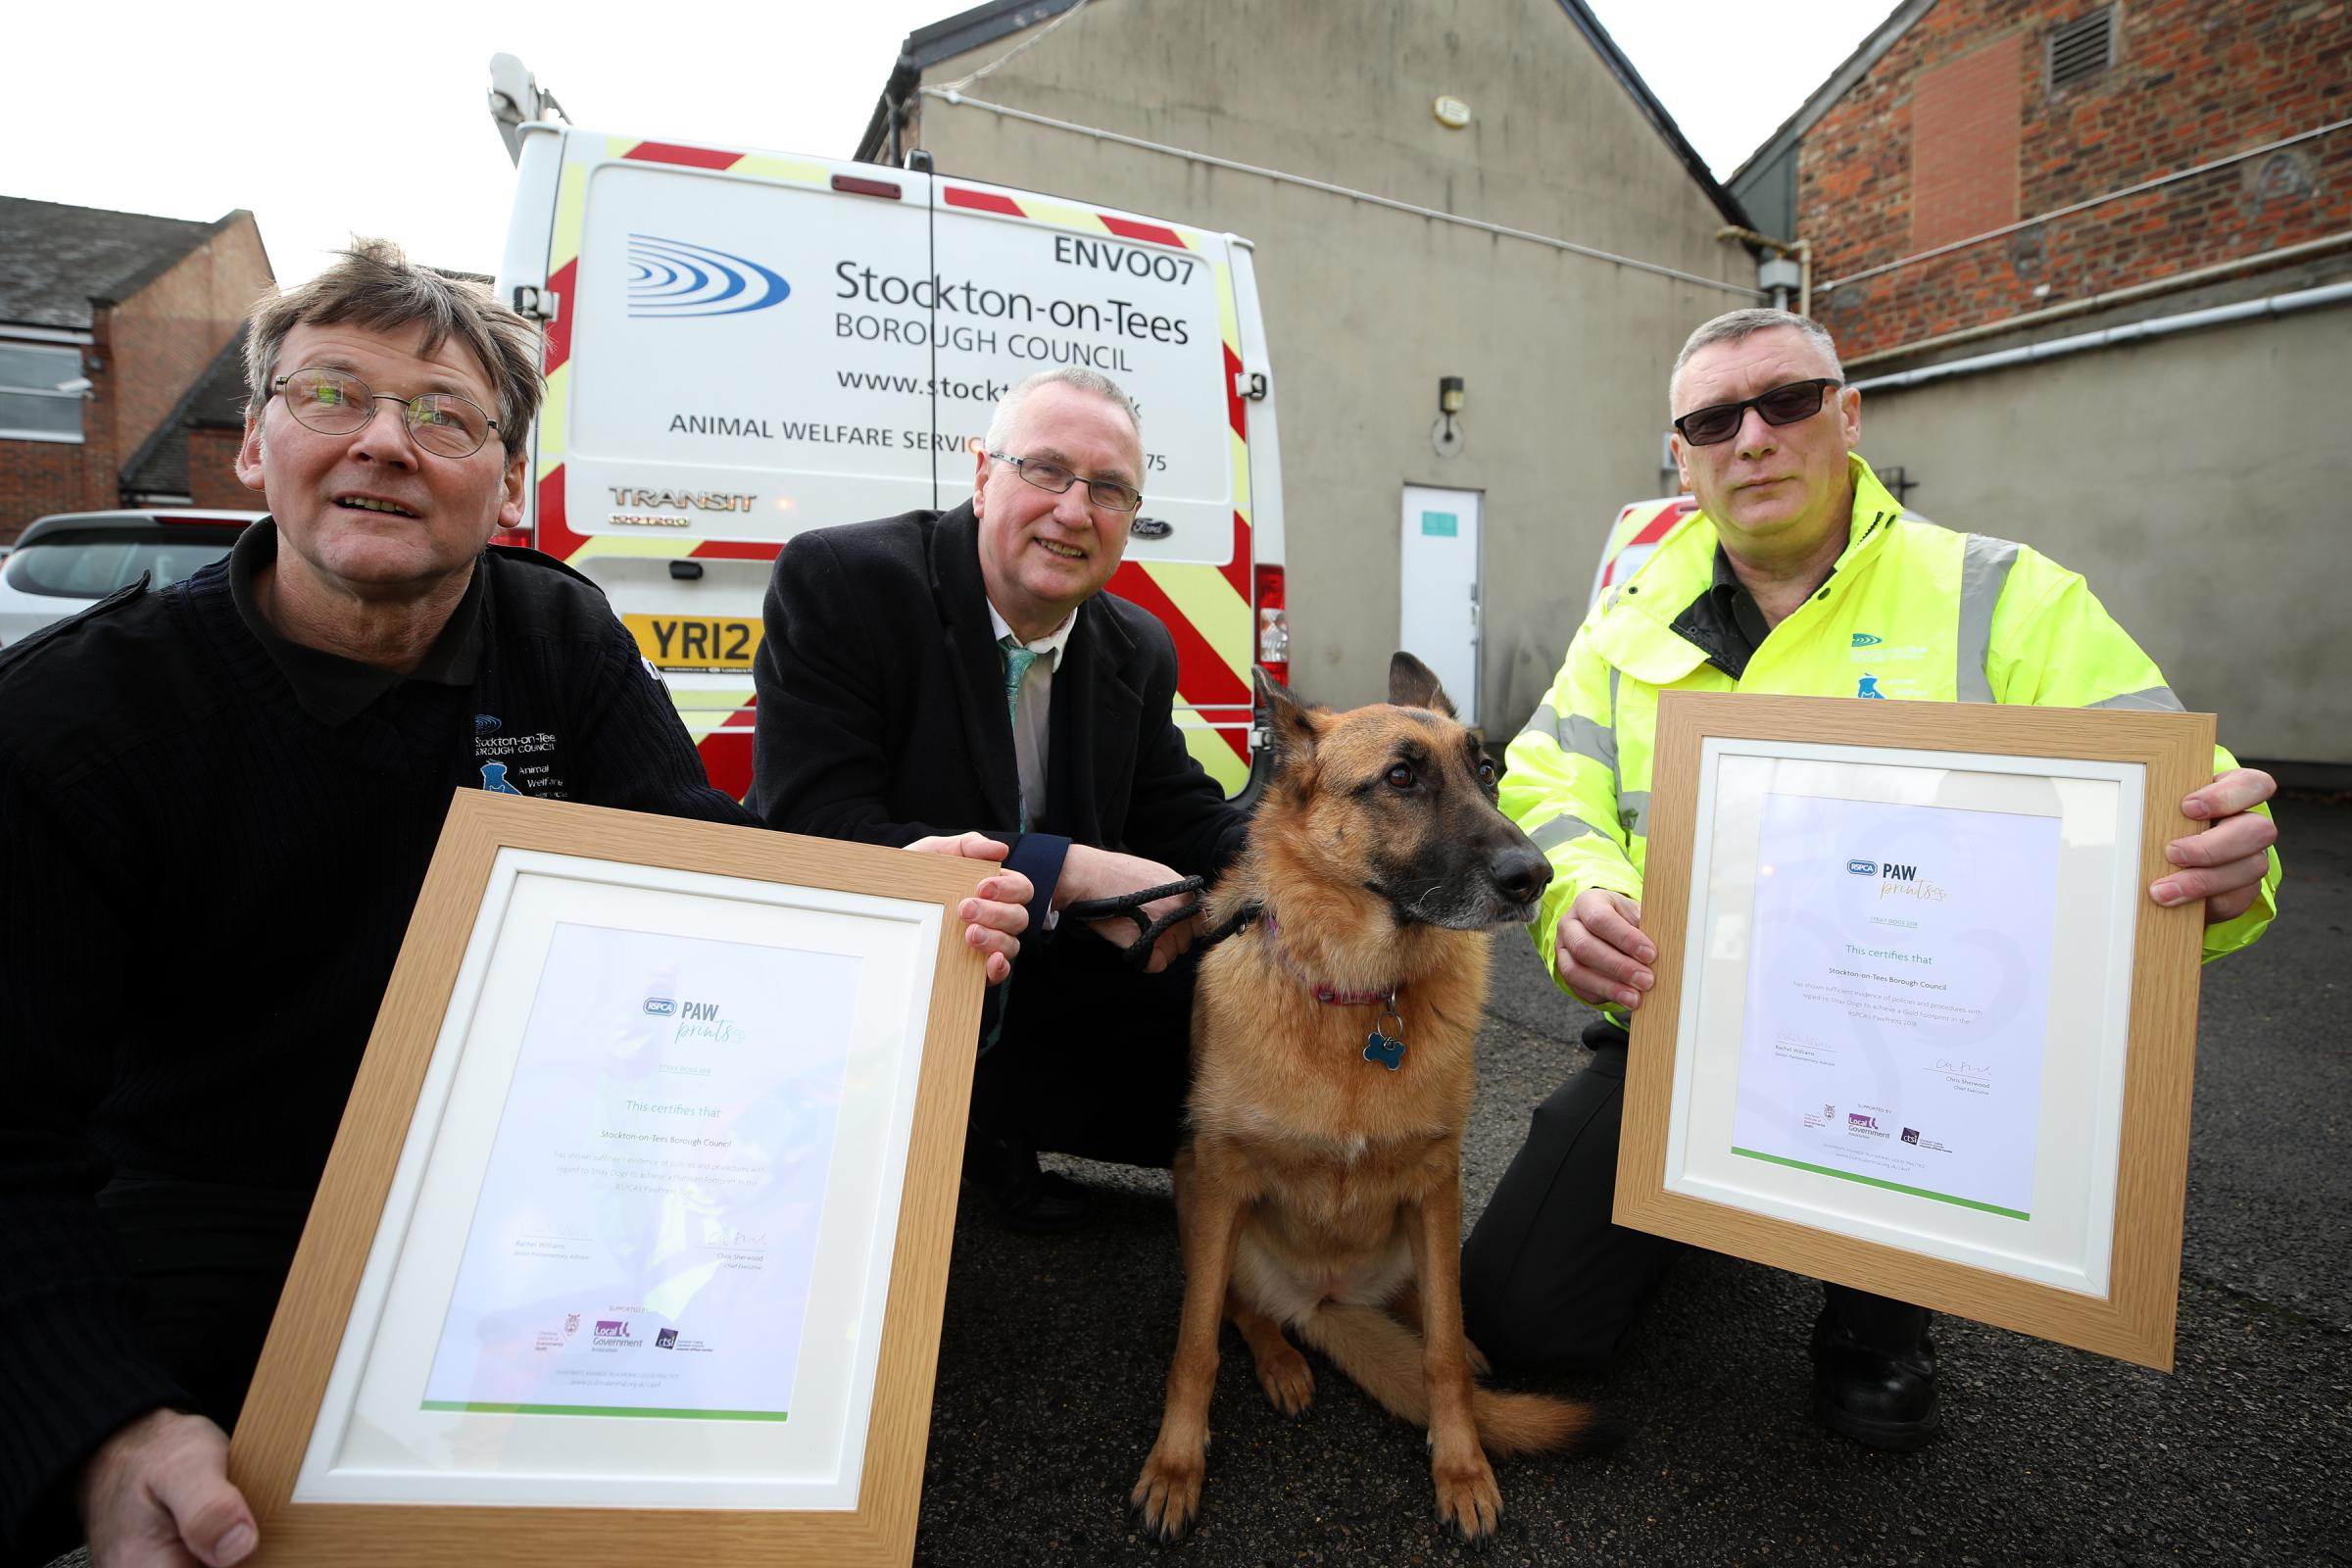 Image of: Rspca Inspector Special Award With The Rspca Awards Are Robin Hunter Animal Enforcement Officer Councillor The Advertiser Top Rspca Award For Stockton Councils Dog Team The Northern Echo